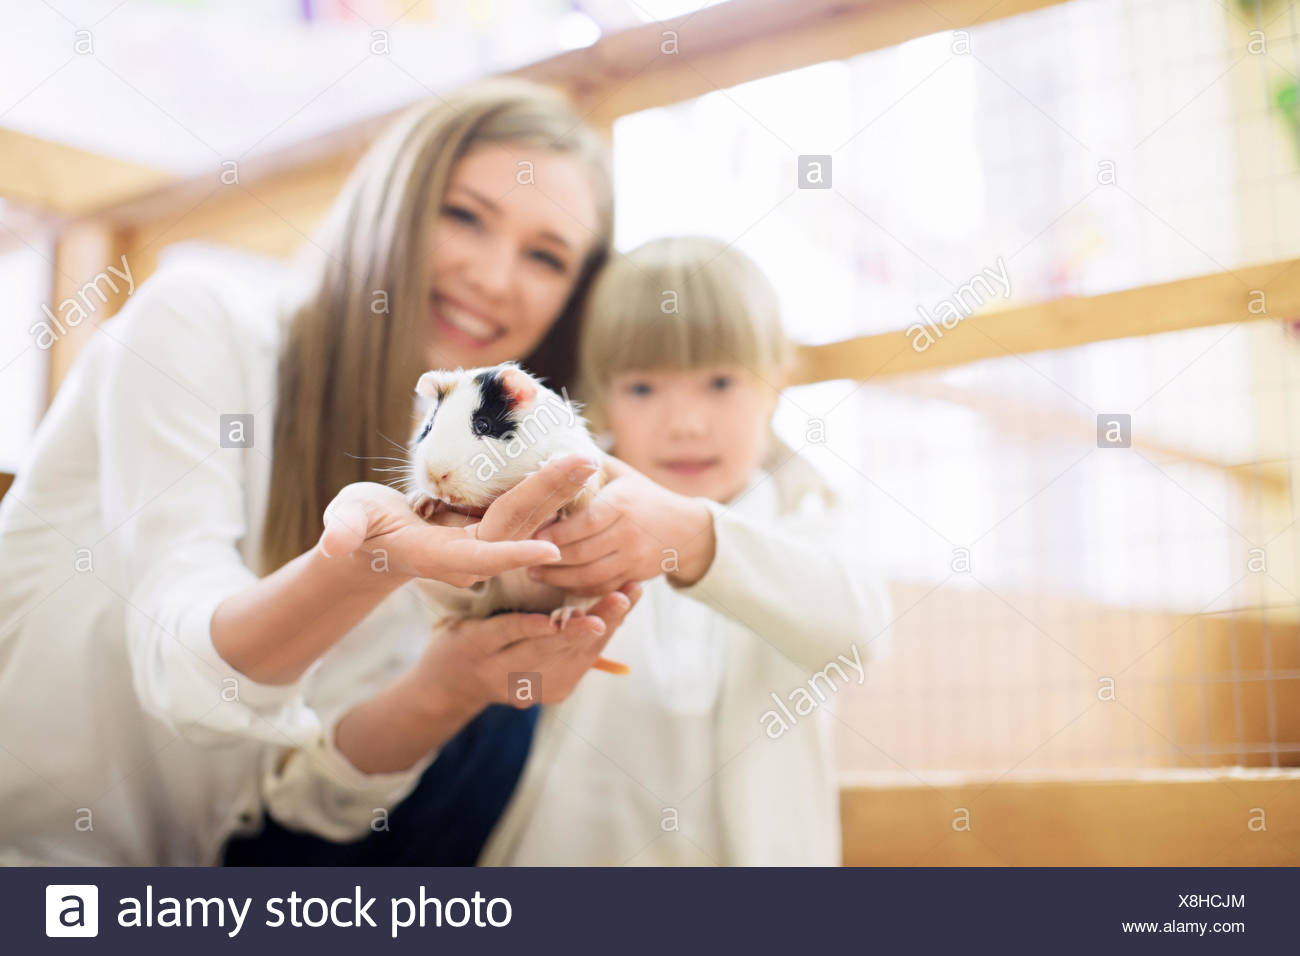 Smiling family - Stock Image